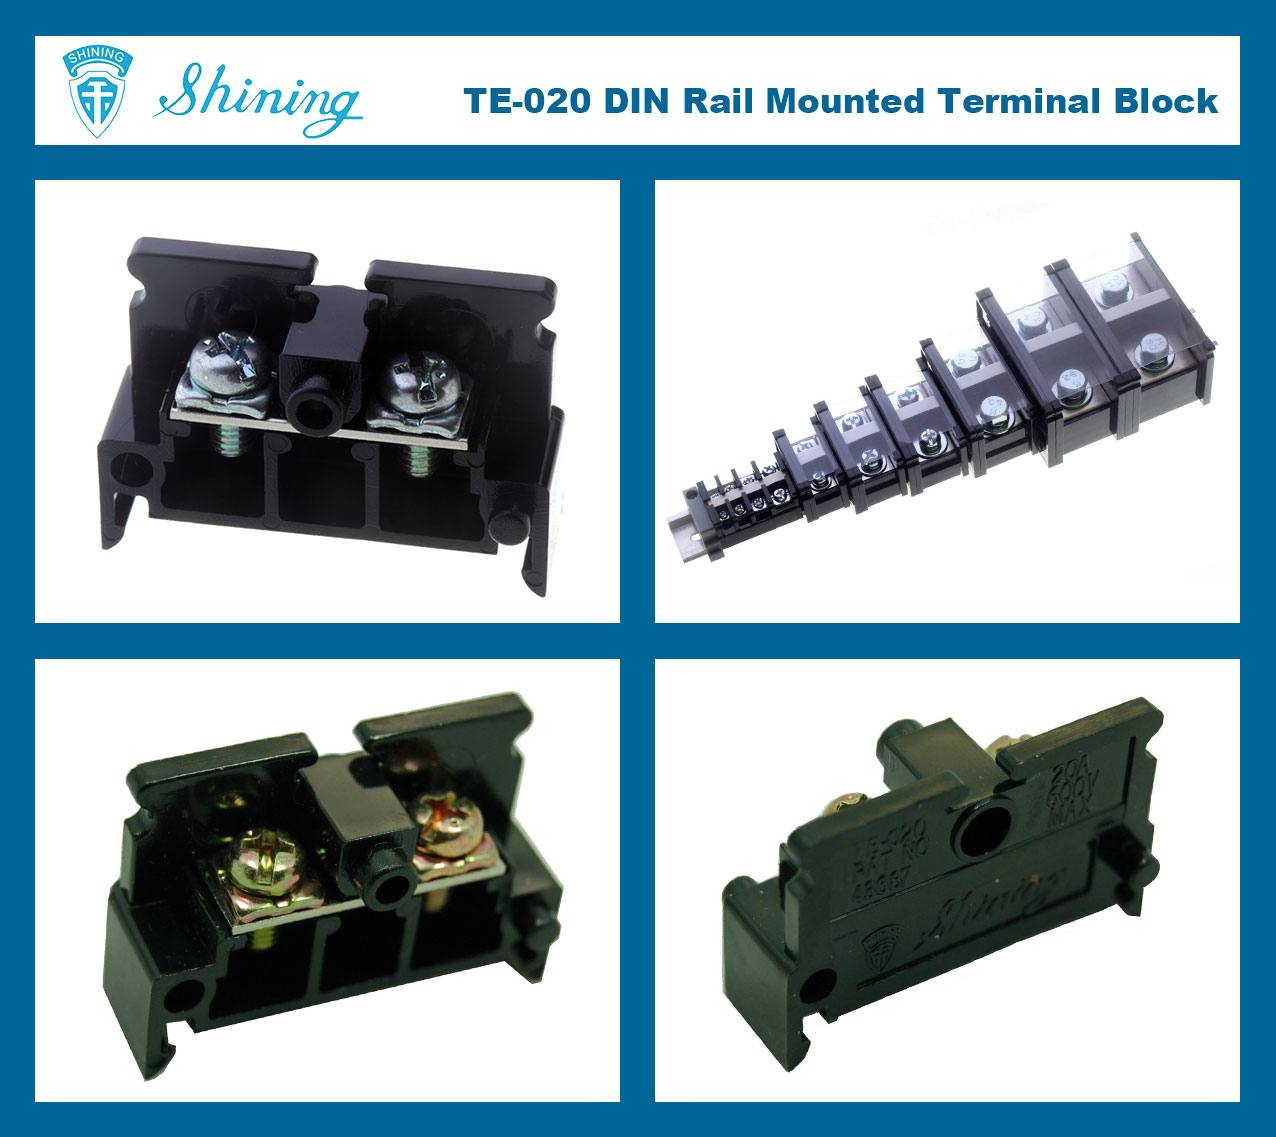 SHINING-TE-020 35mm Din Rail Mounted Assembly Type 600V 20A Terminal Strip